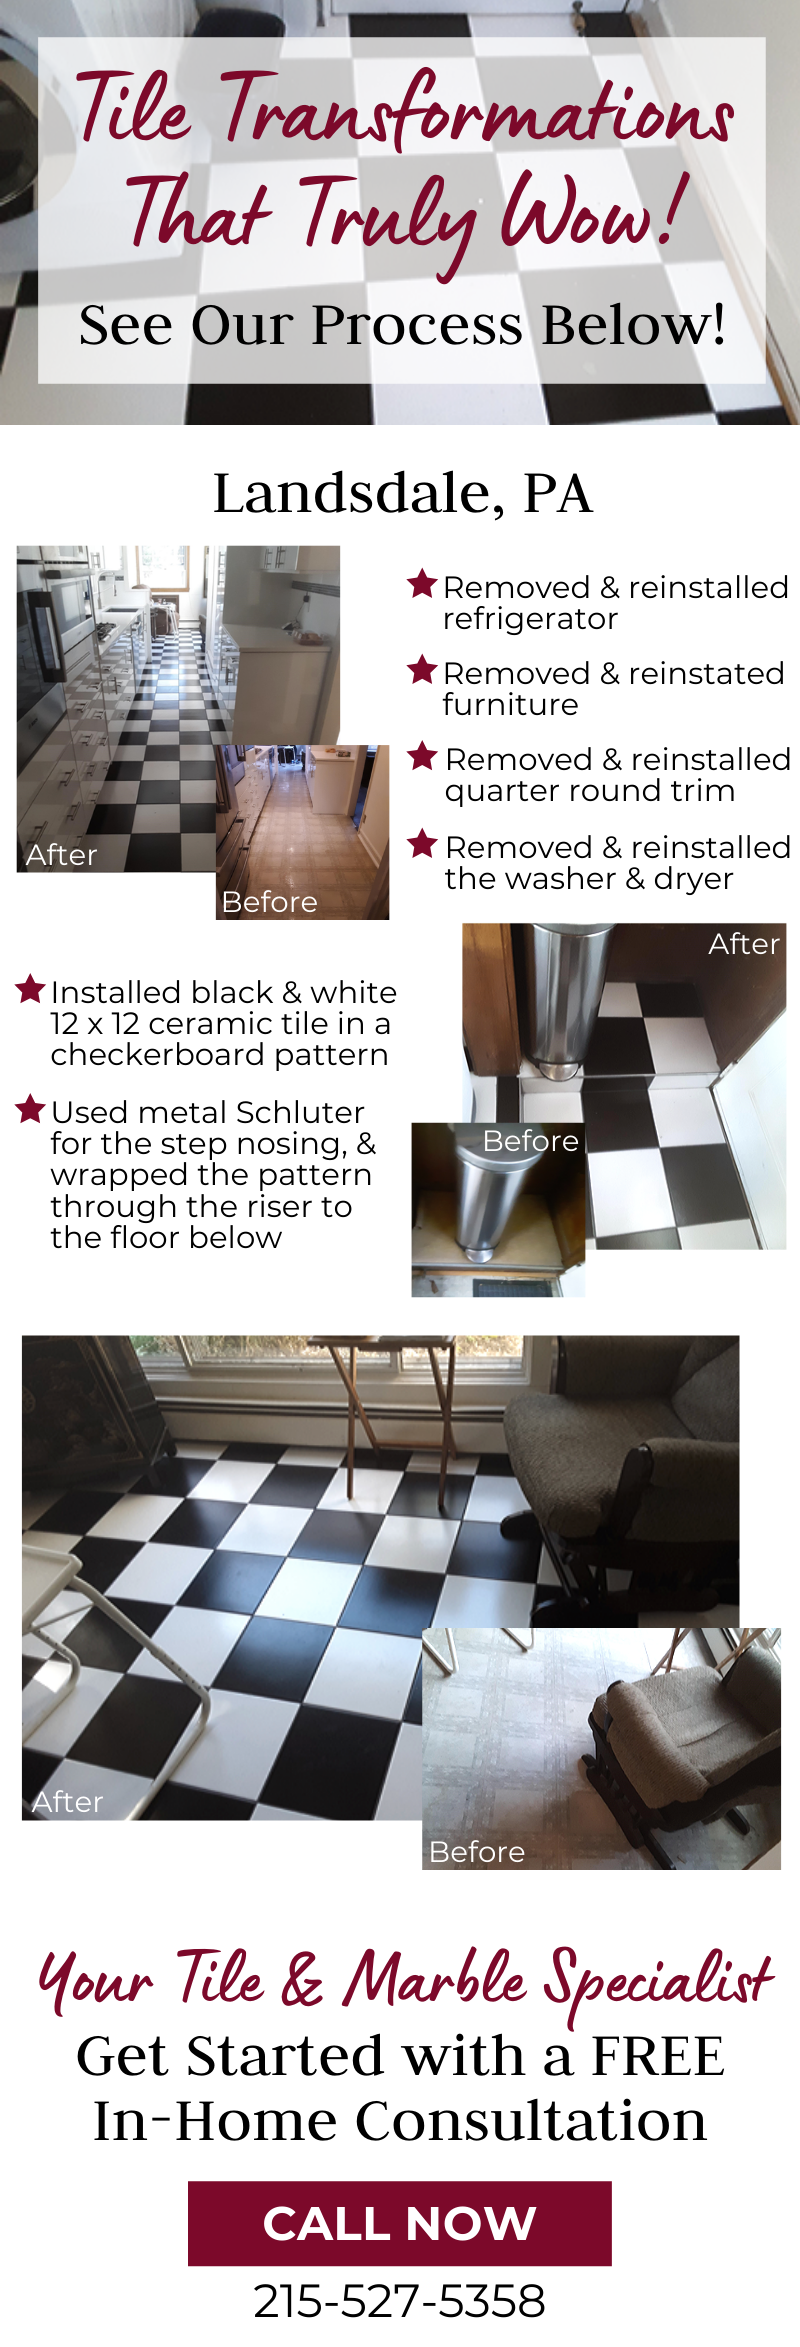 Tile Transformations That Truly Wow! 44